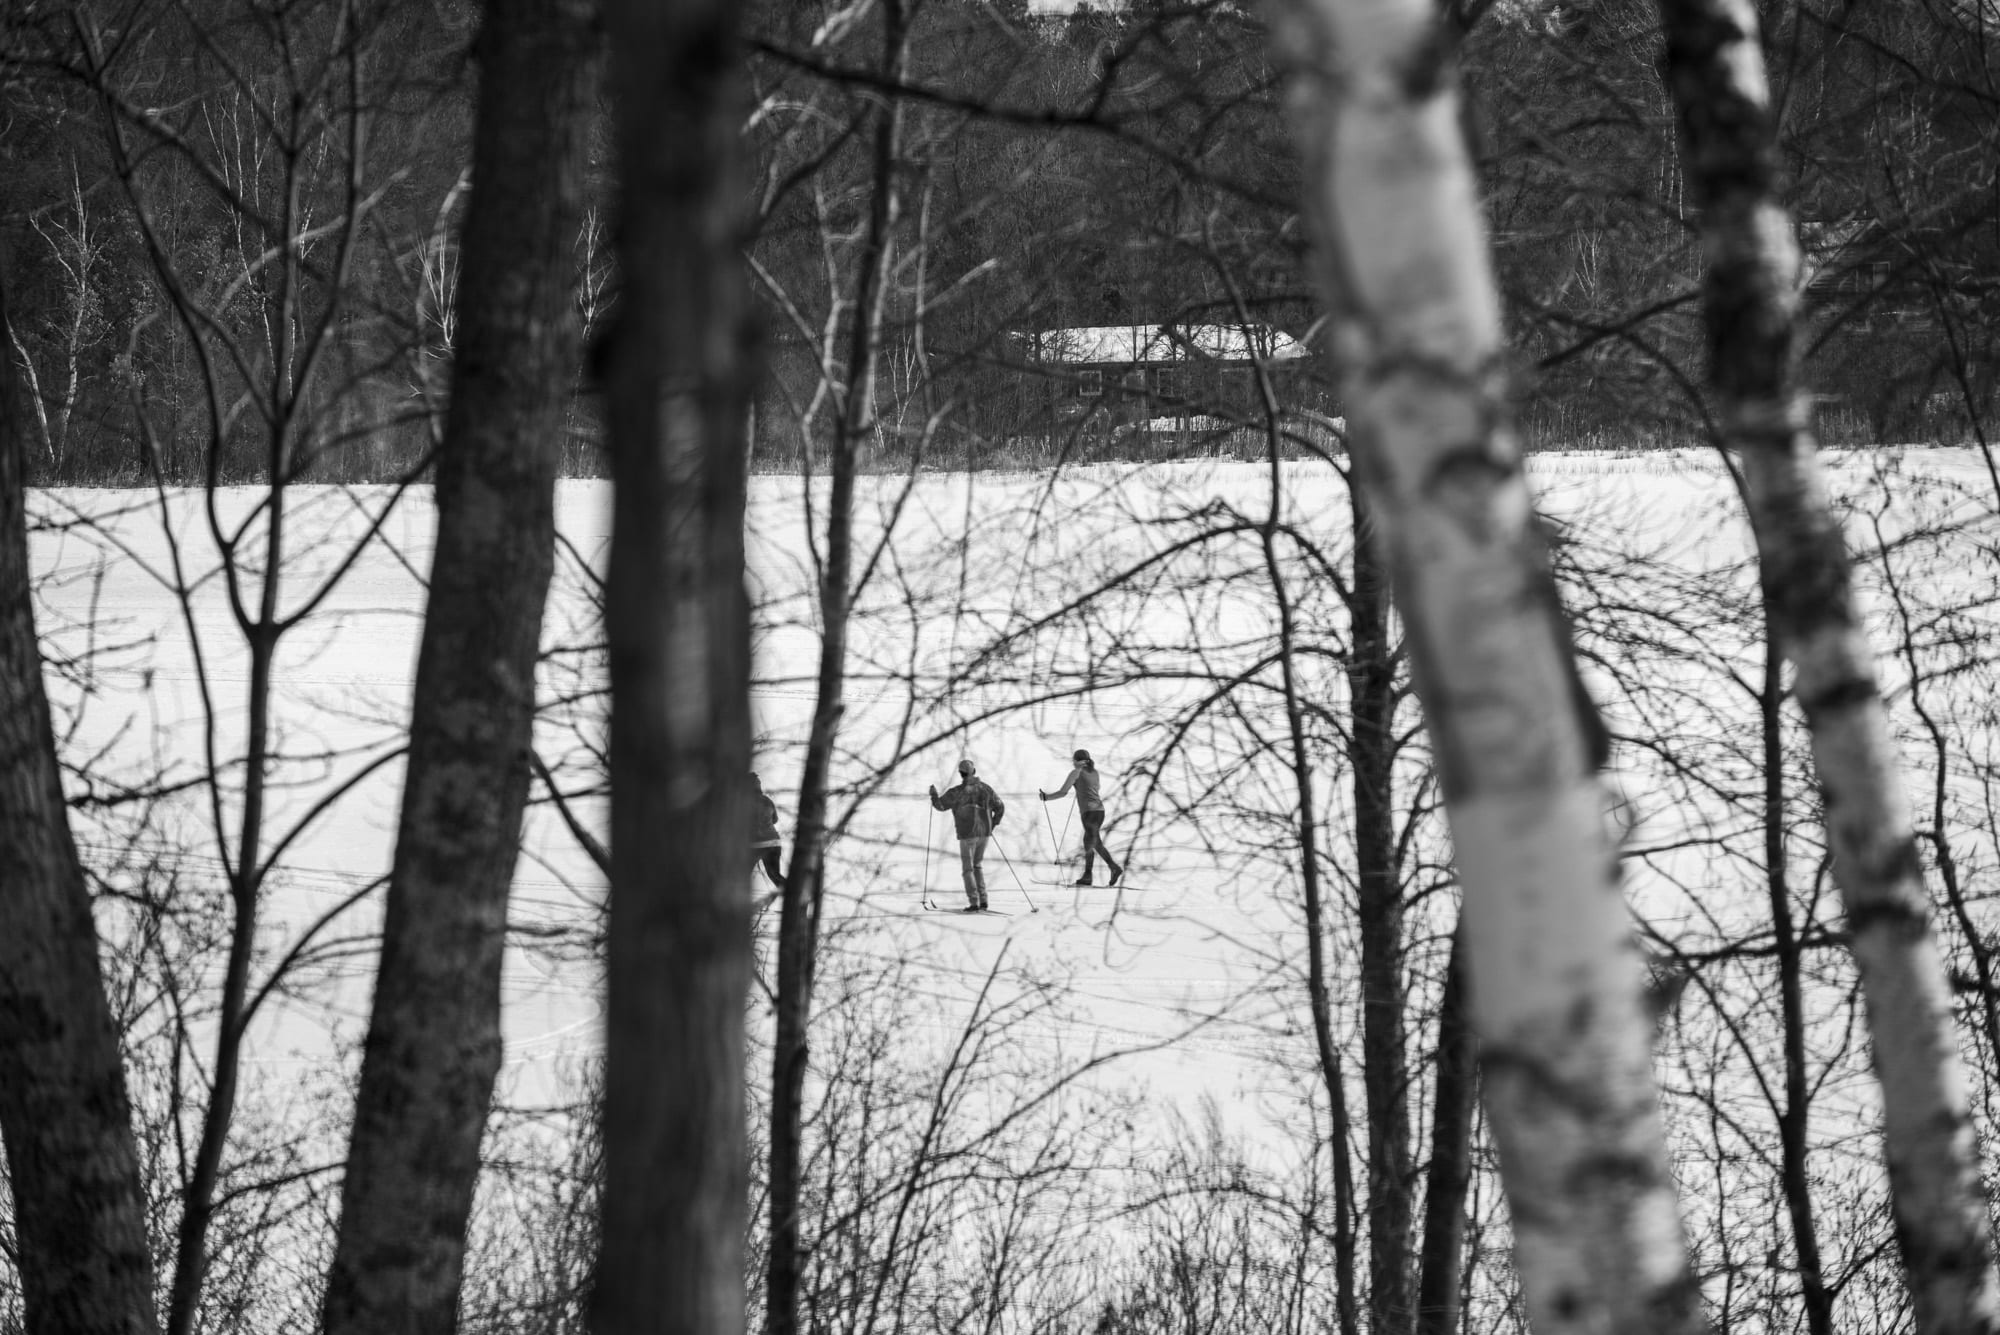 People cross-country skiing on lake during winter.